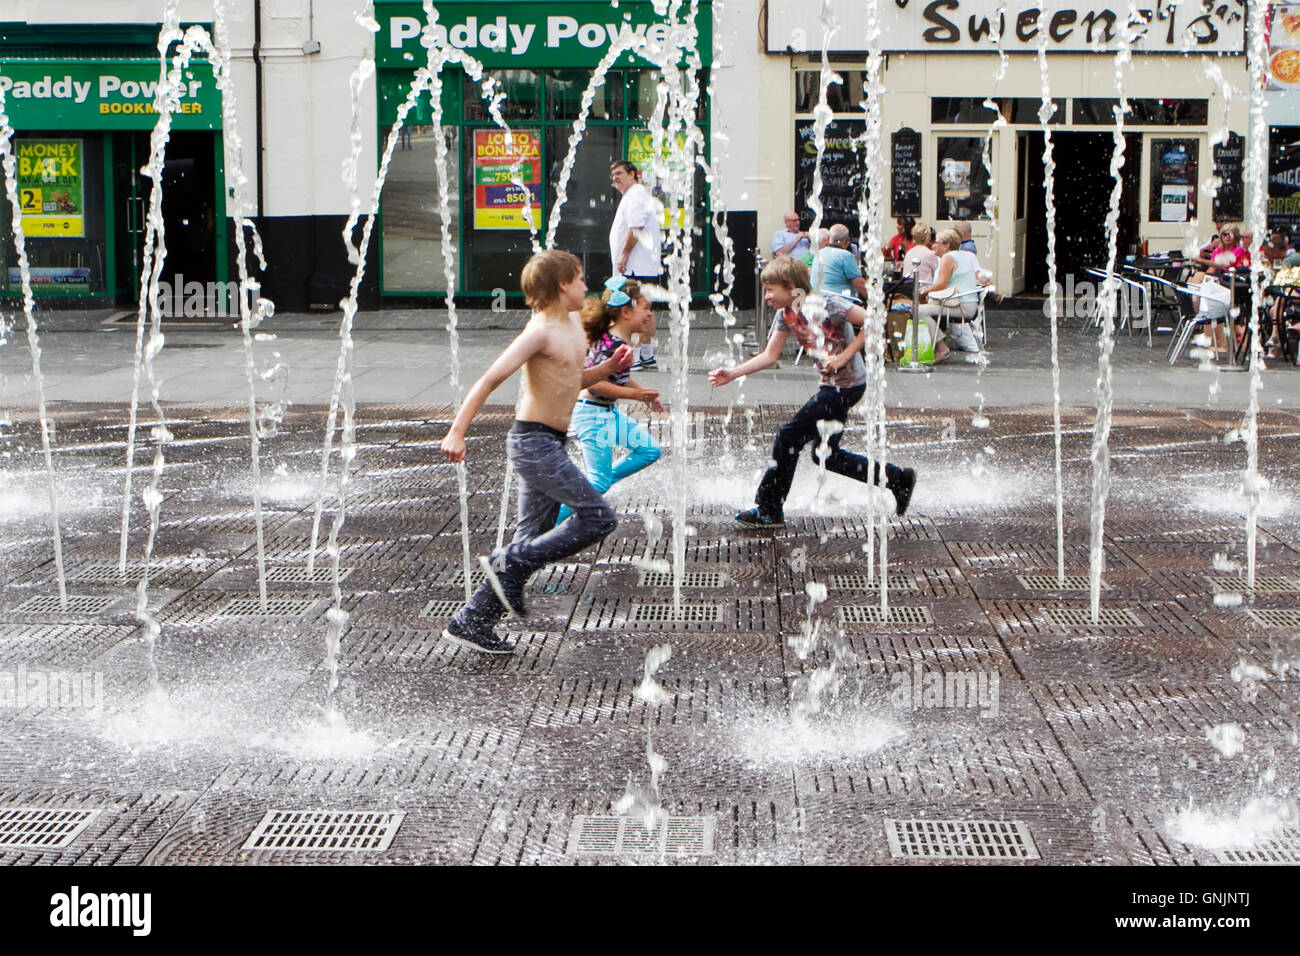 Children playing in the pulsating fountains and water jets in Williamson Square, Liverpool, Merseyside, UK Stock Photo